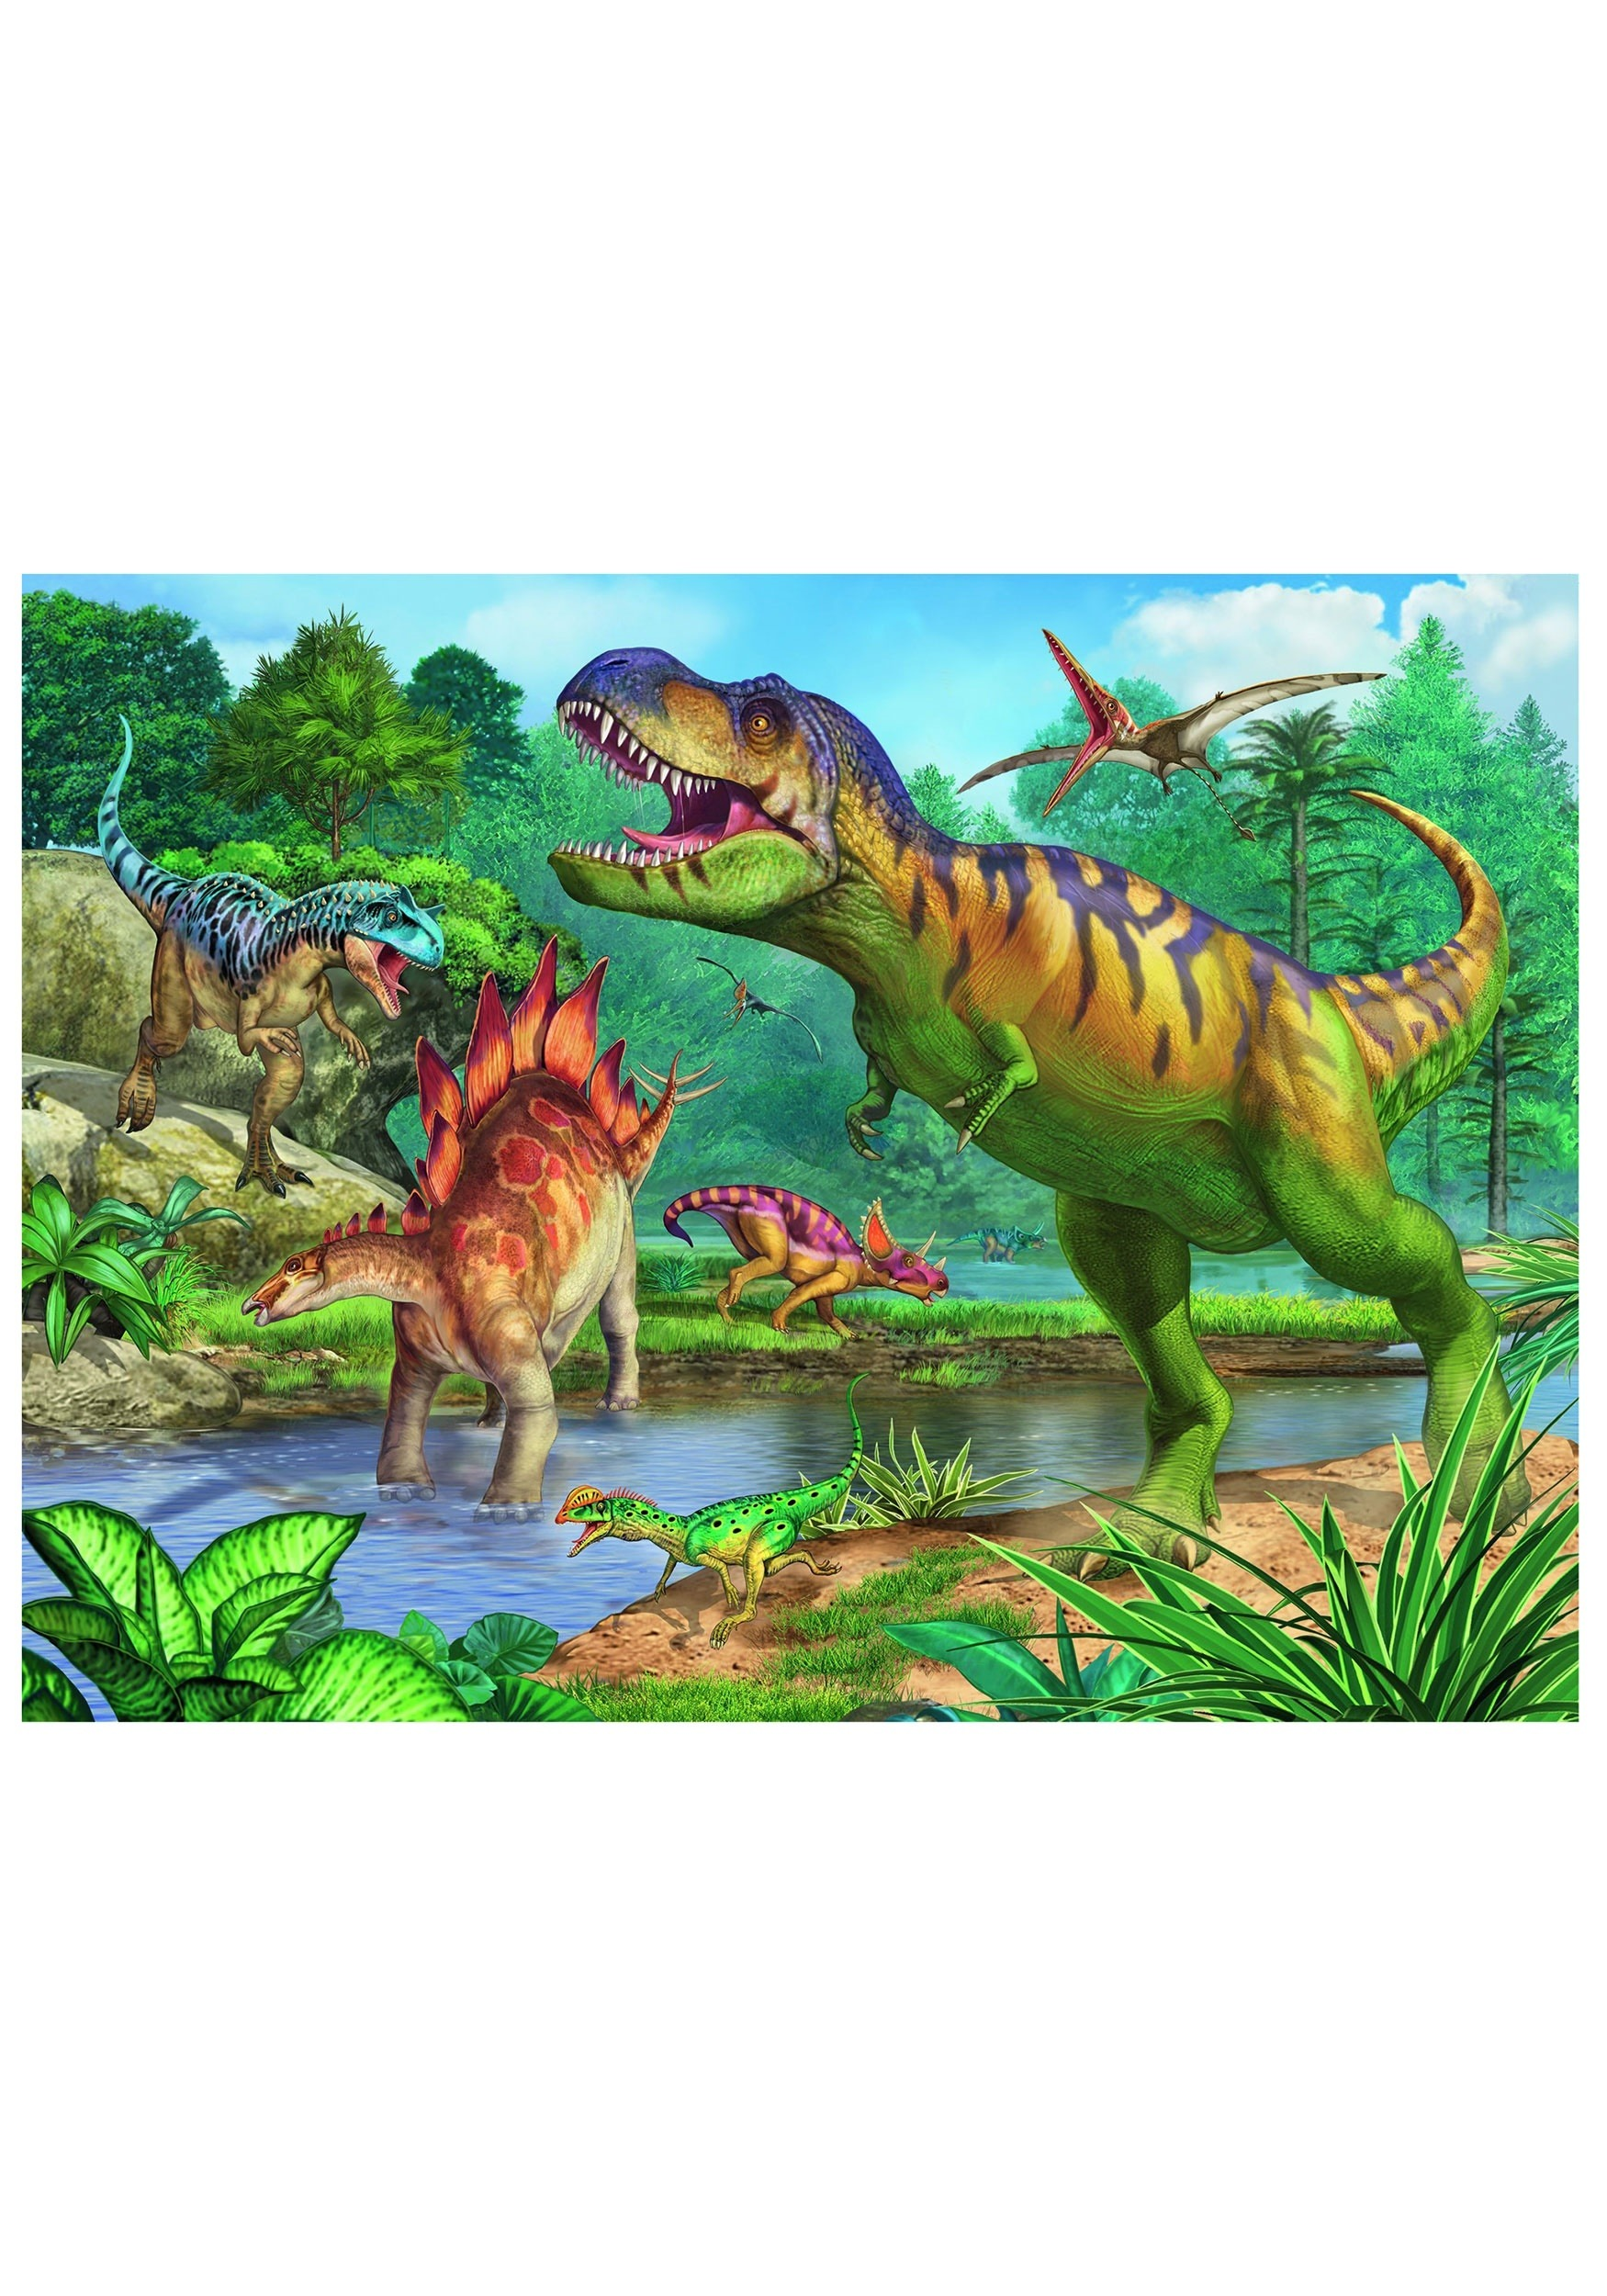 World of Dinosaurs 100 Piece Ravensburger Puzzle and Coloring Book